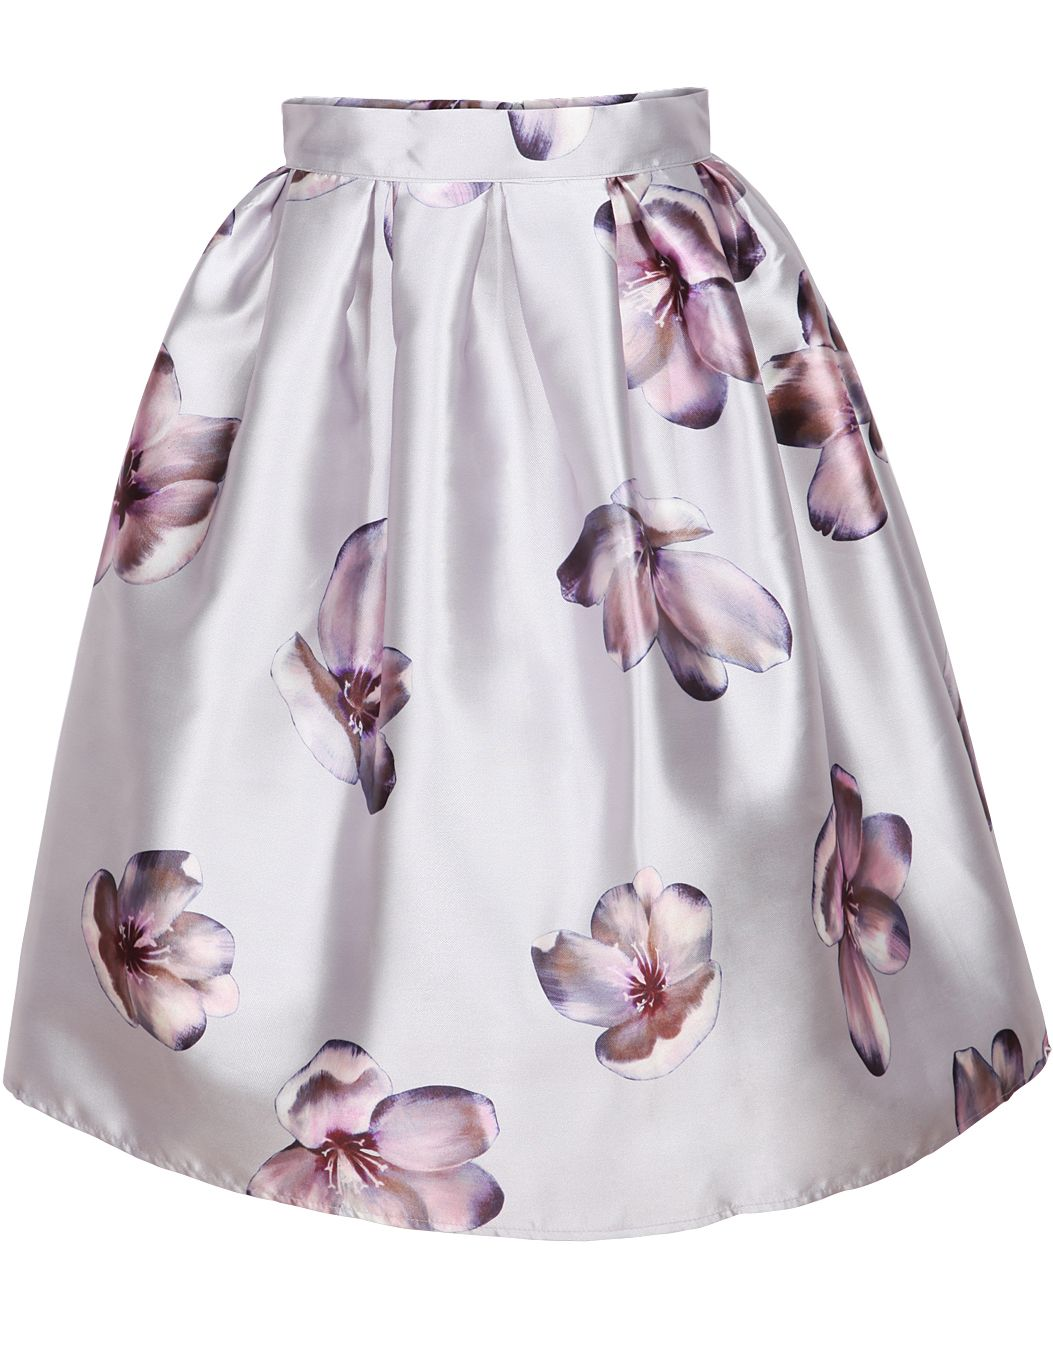 a16081ad16c73 Shop Grey Floral Flare Skirt online. Sheinside offers Grey Floral Flare  Skirt   more to fit your fashionable needs. Free Shipping Worldwide!